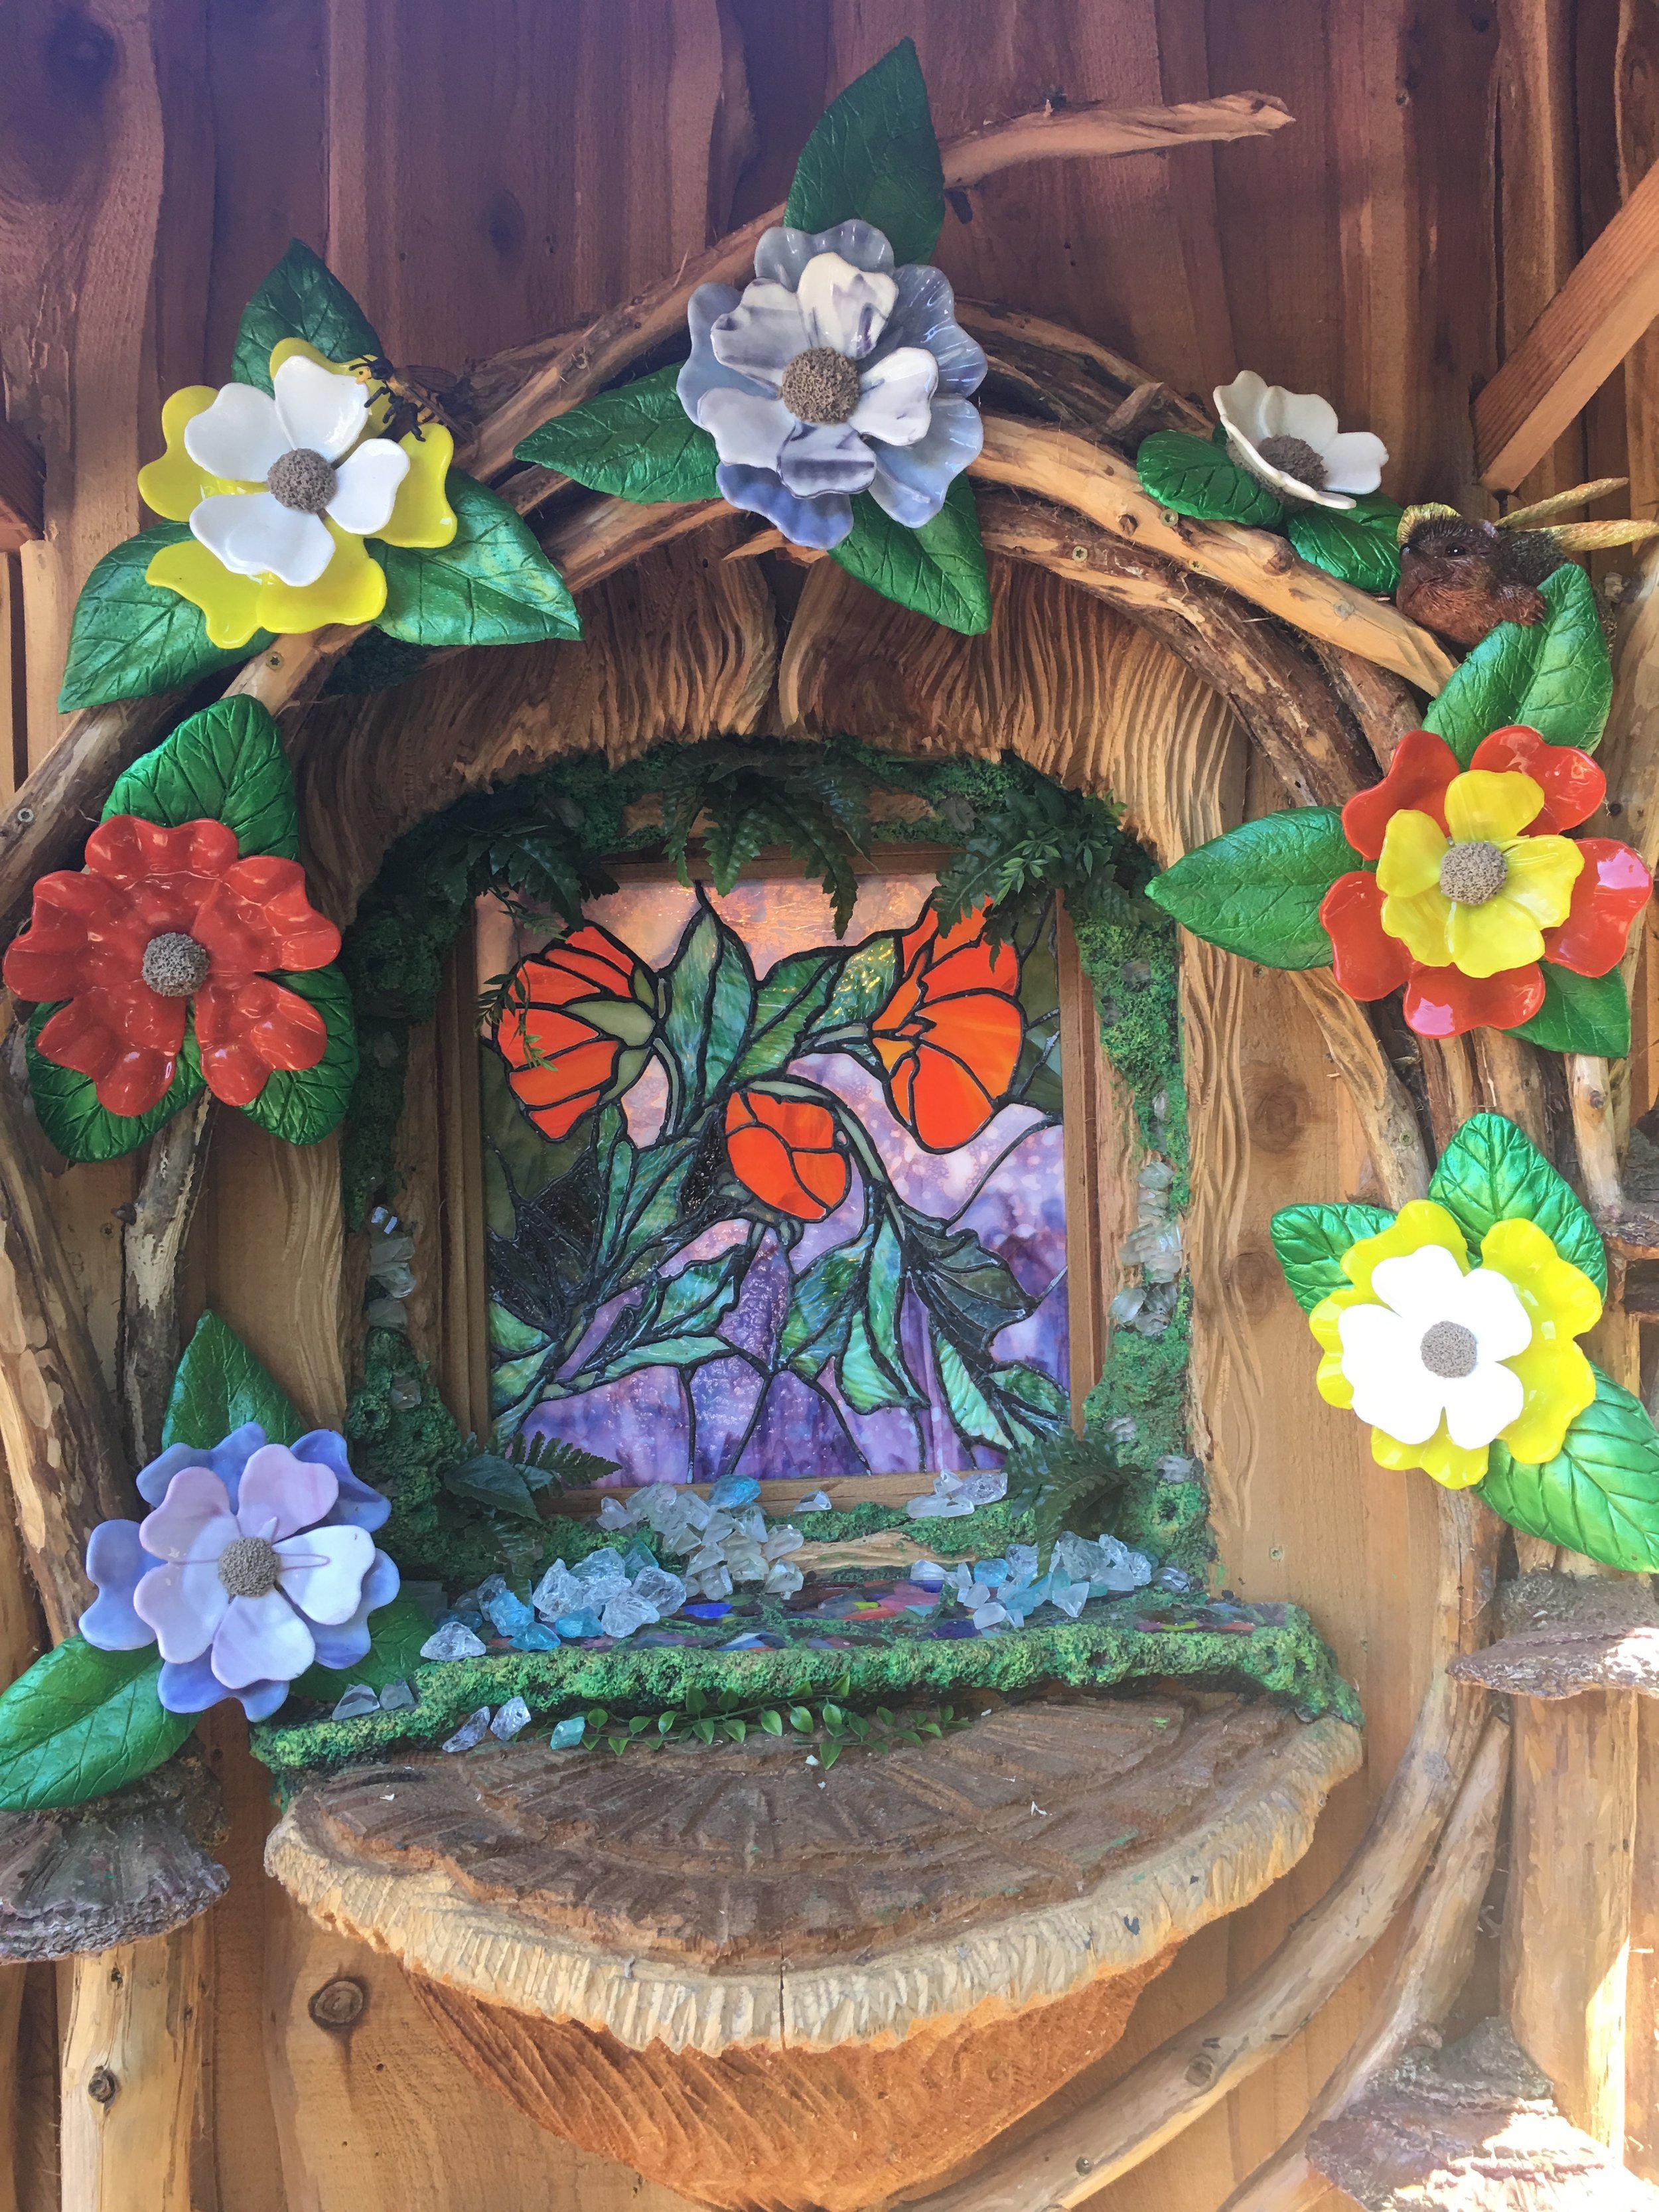 Stained glass window and stained glass sculptural flowers on fairy house.